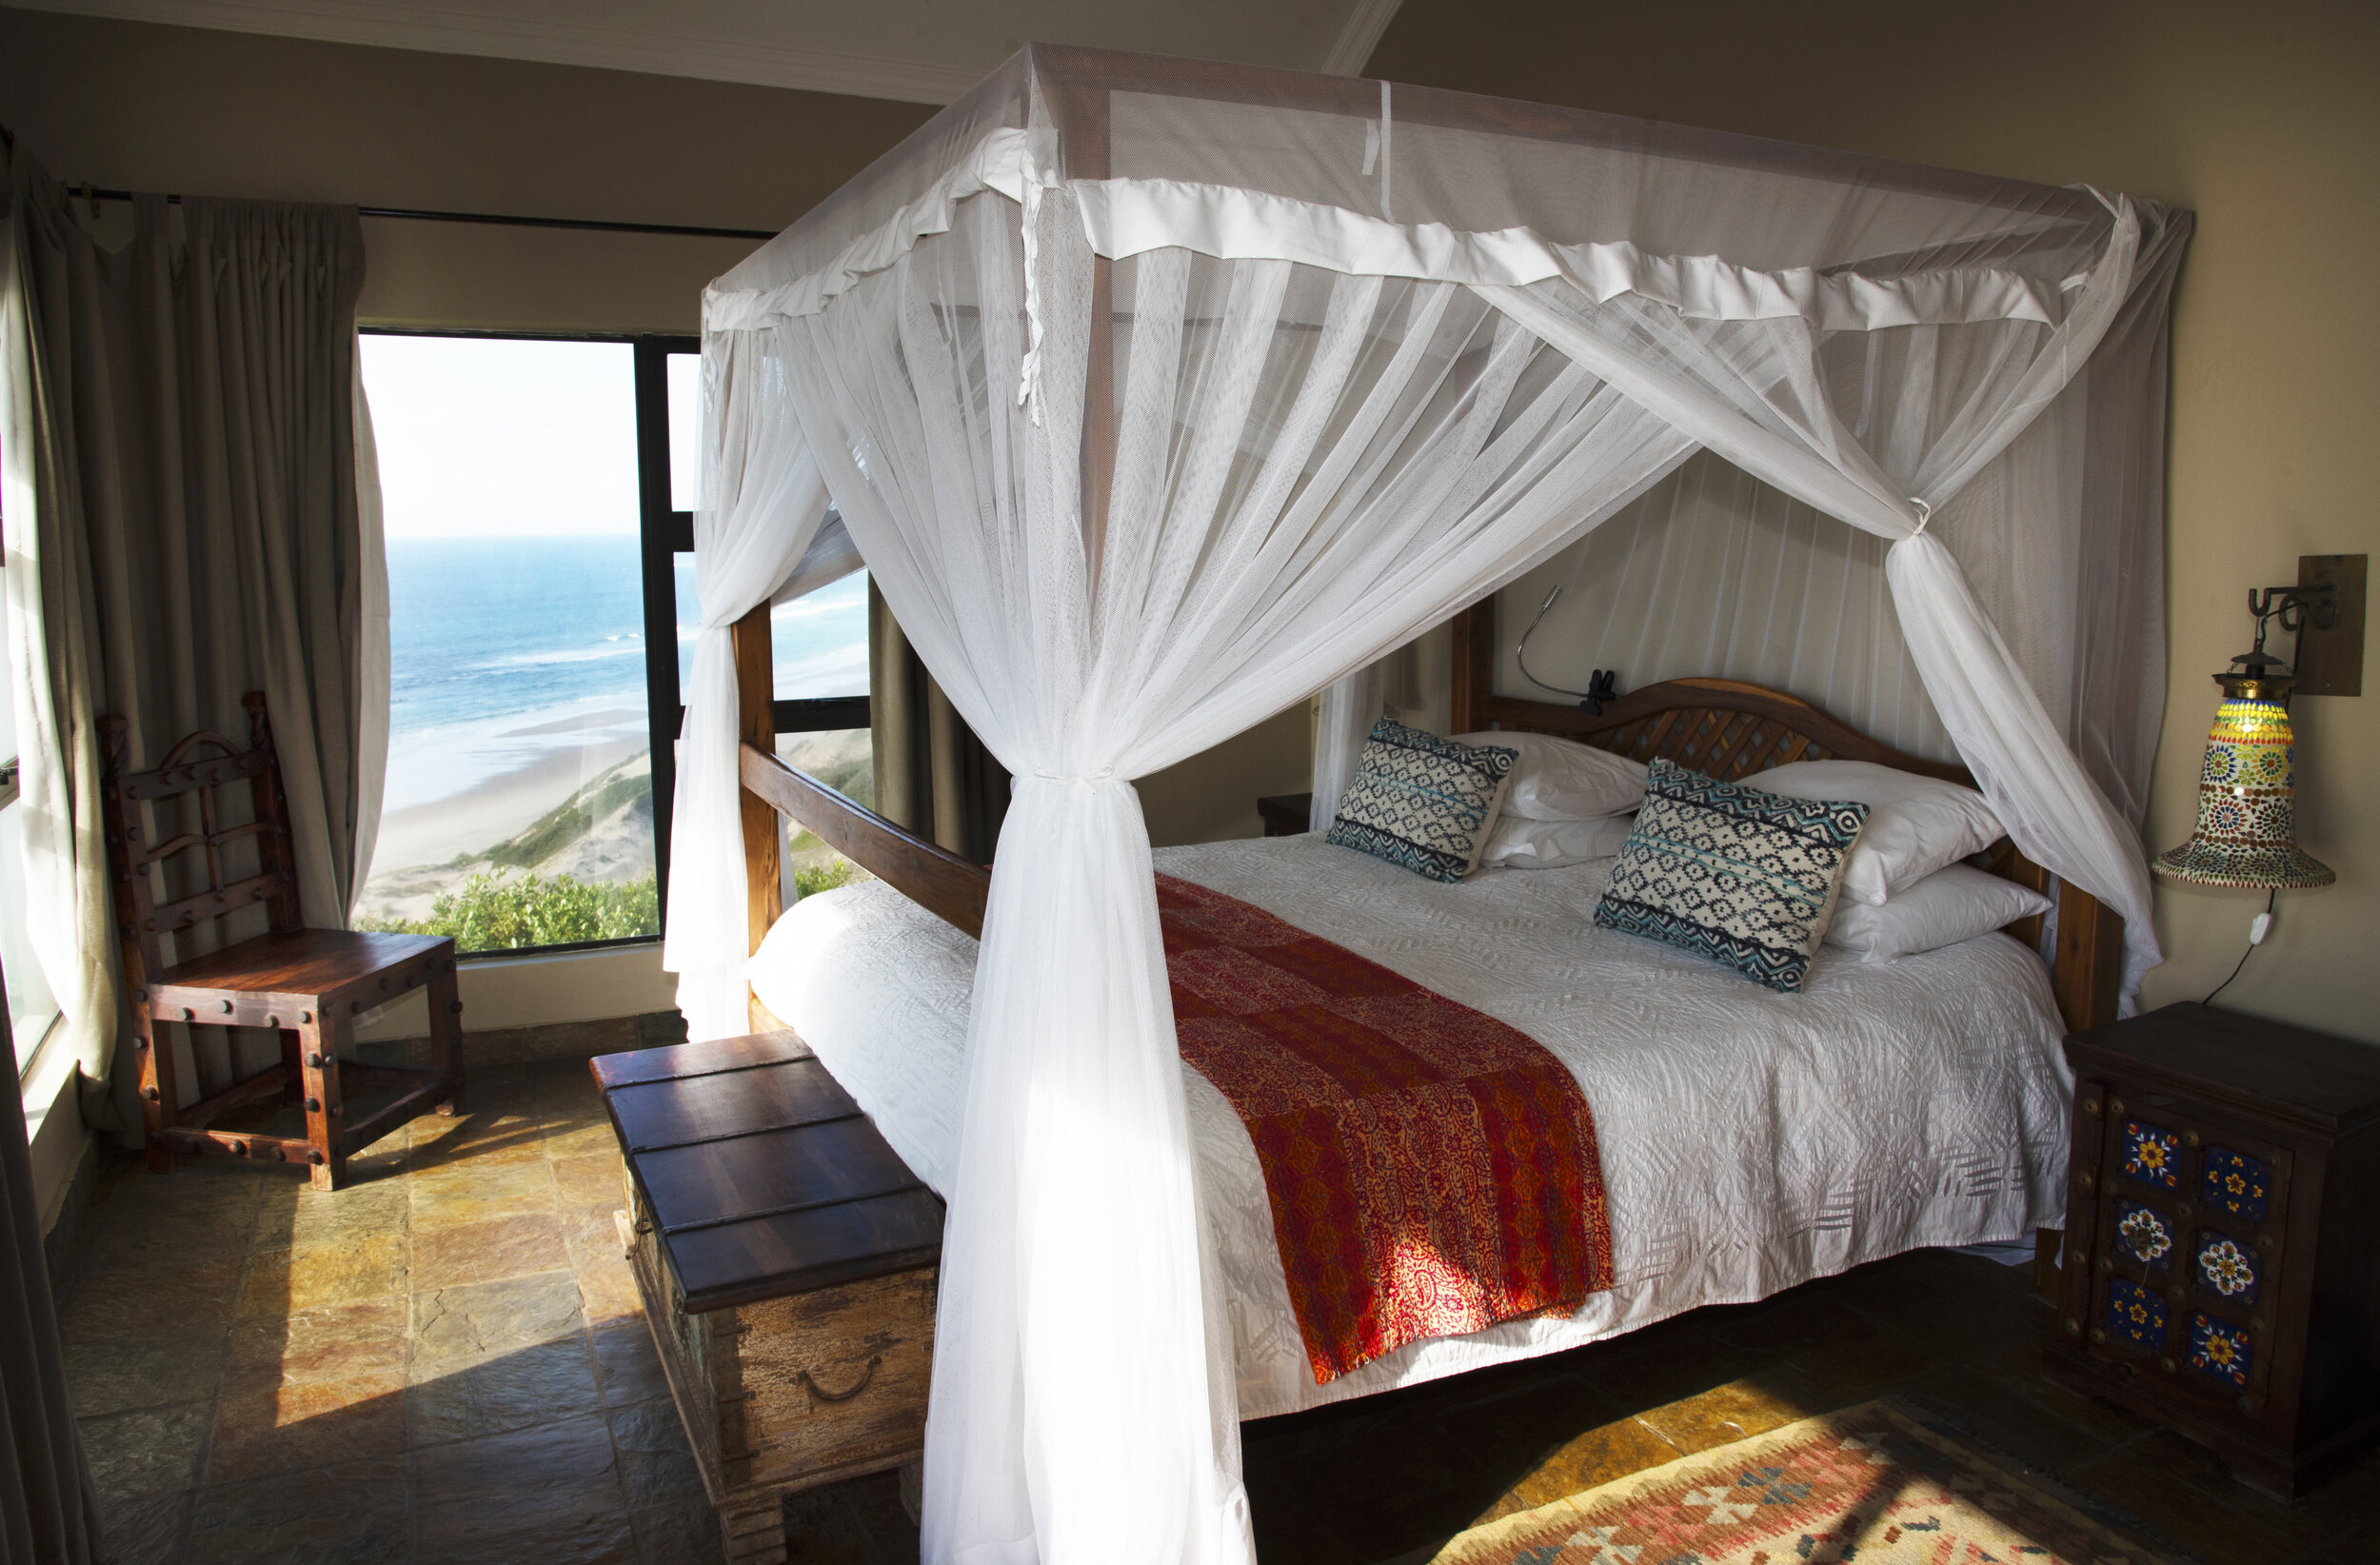 Rooms - The rooms share a welcoming sea view. Decorated with a touch of Indian influence. The rooms include beach towels, beach bag idyllic for those days spent on our beach. The linen are all 100% cotton.